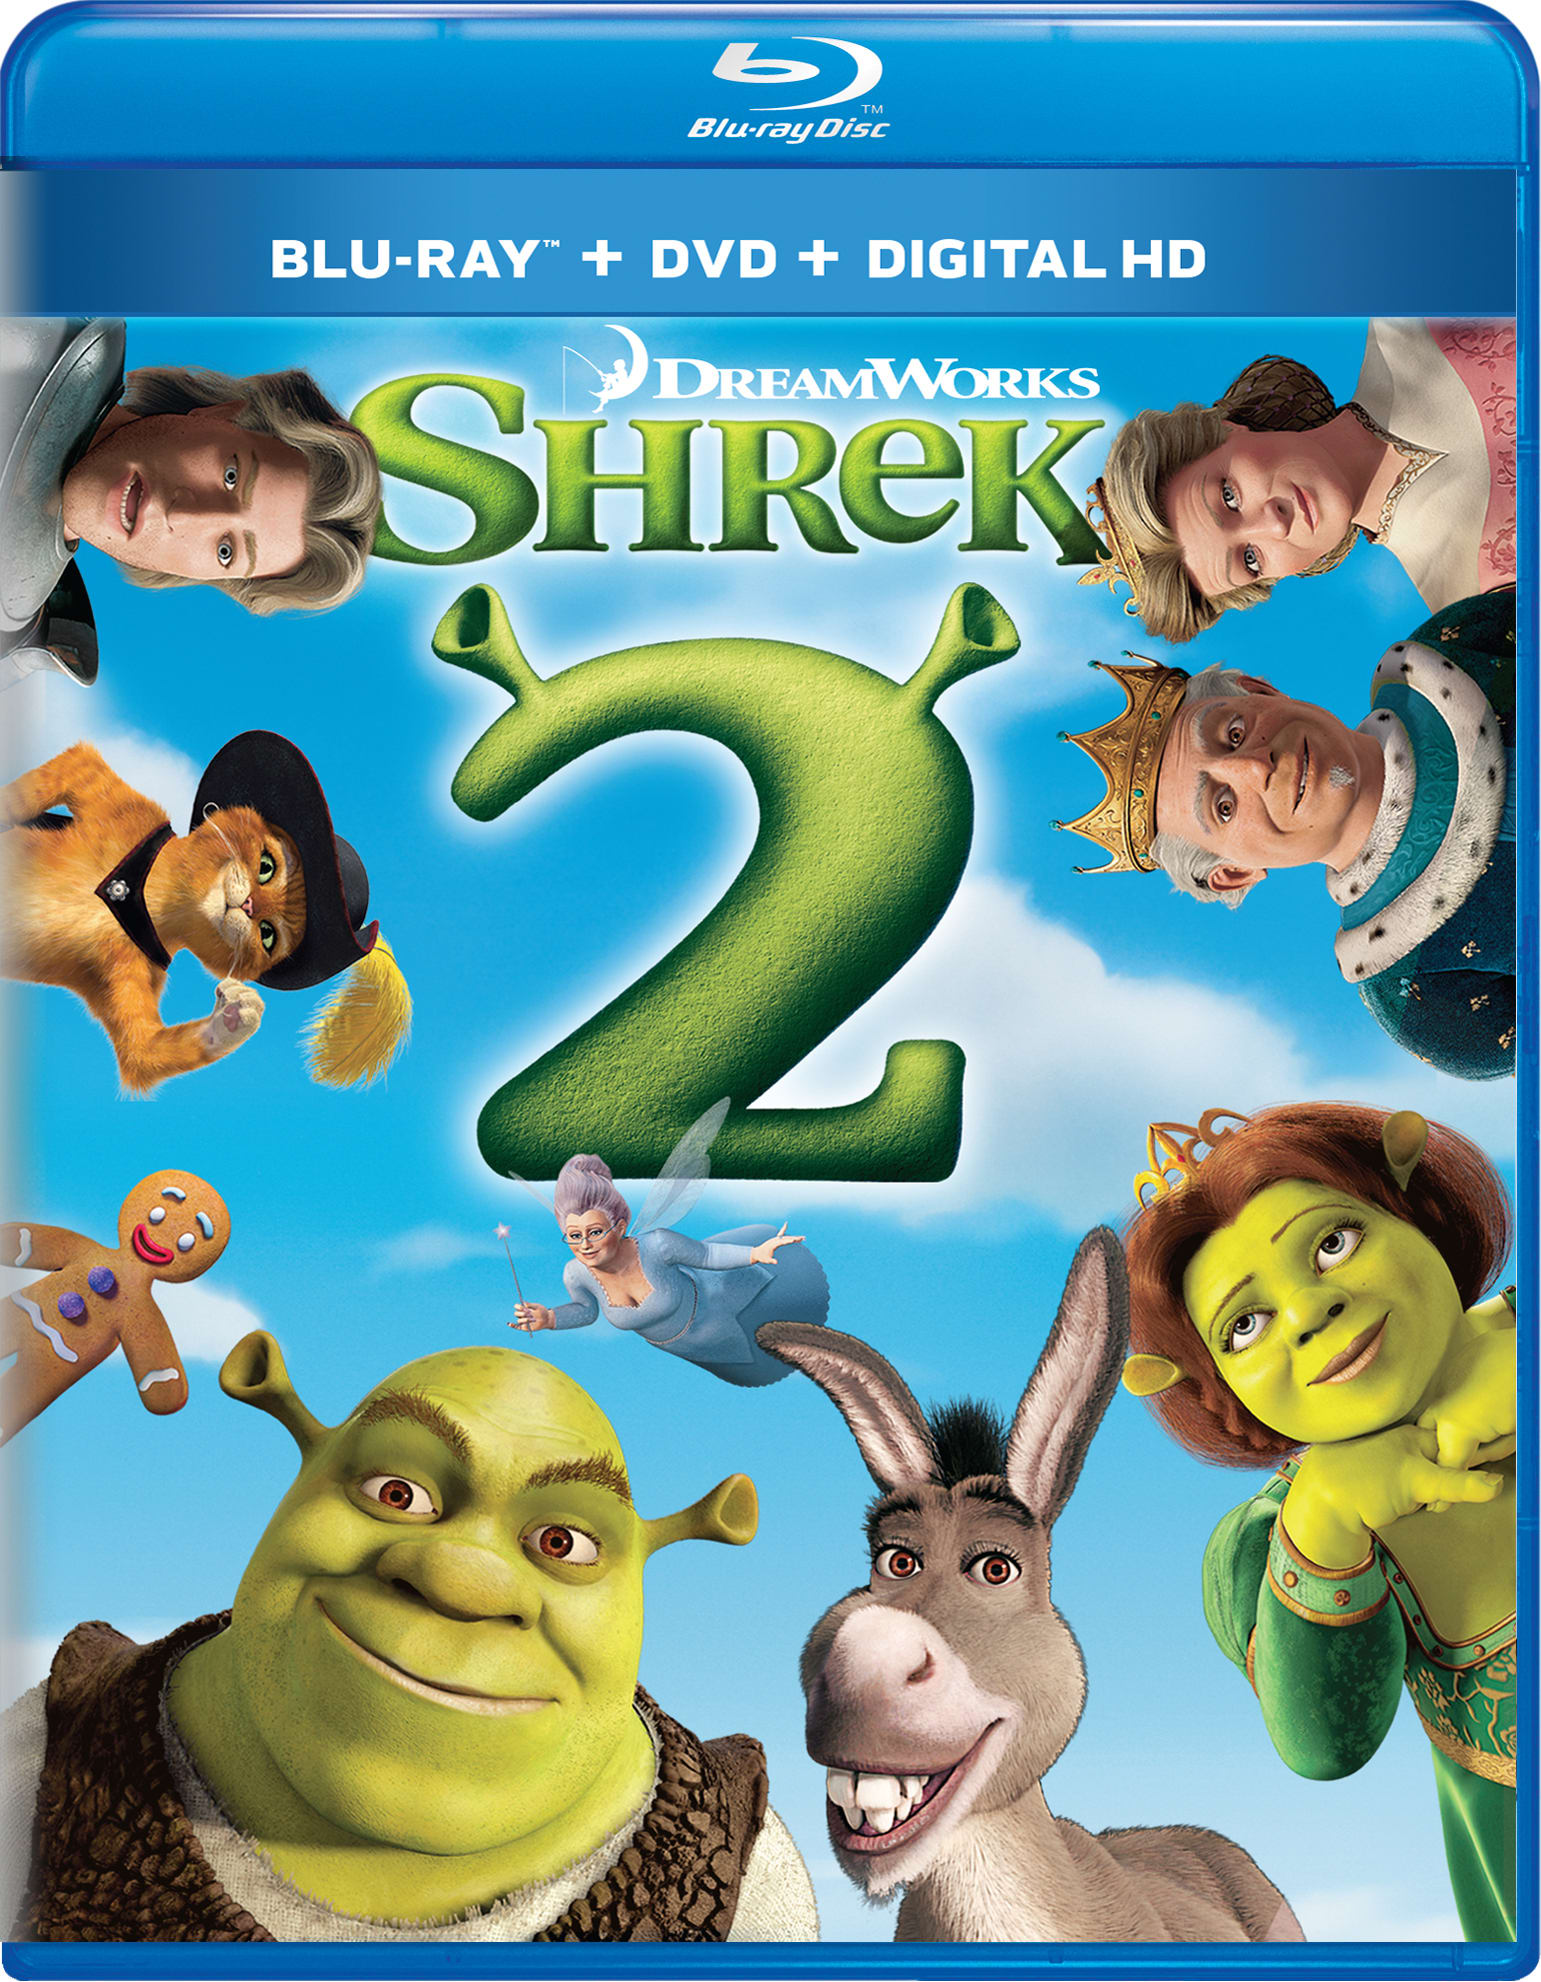 Shrek 2 (DVD + Digital) [Blu-ray]